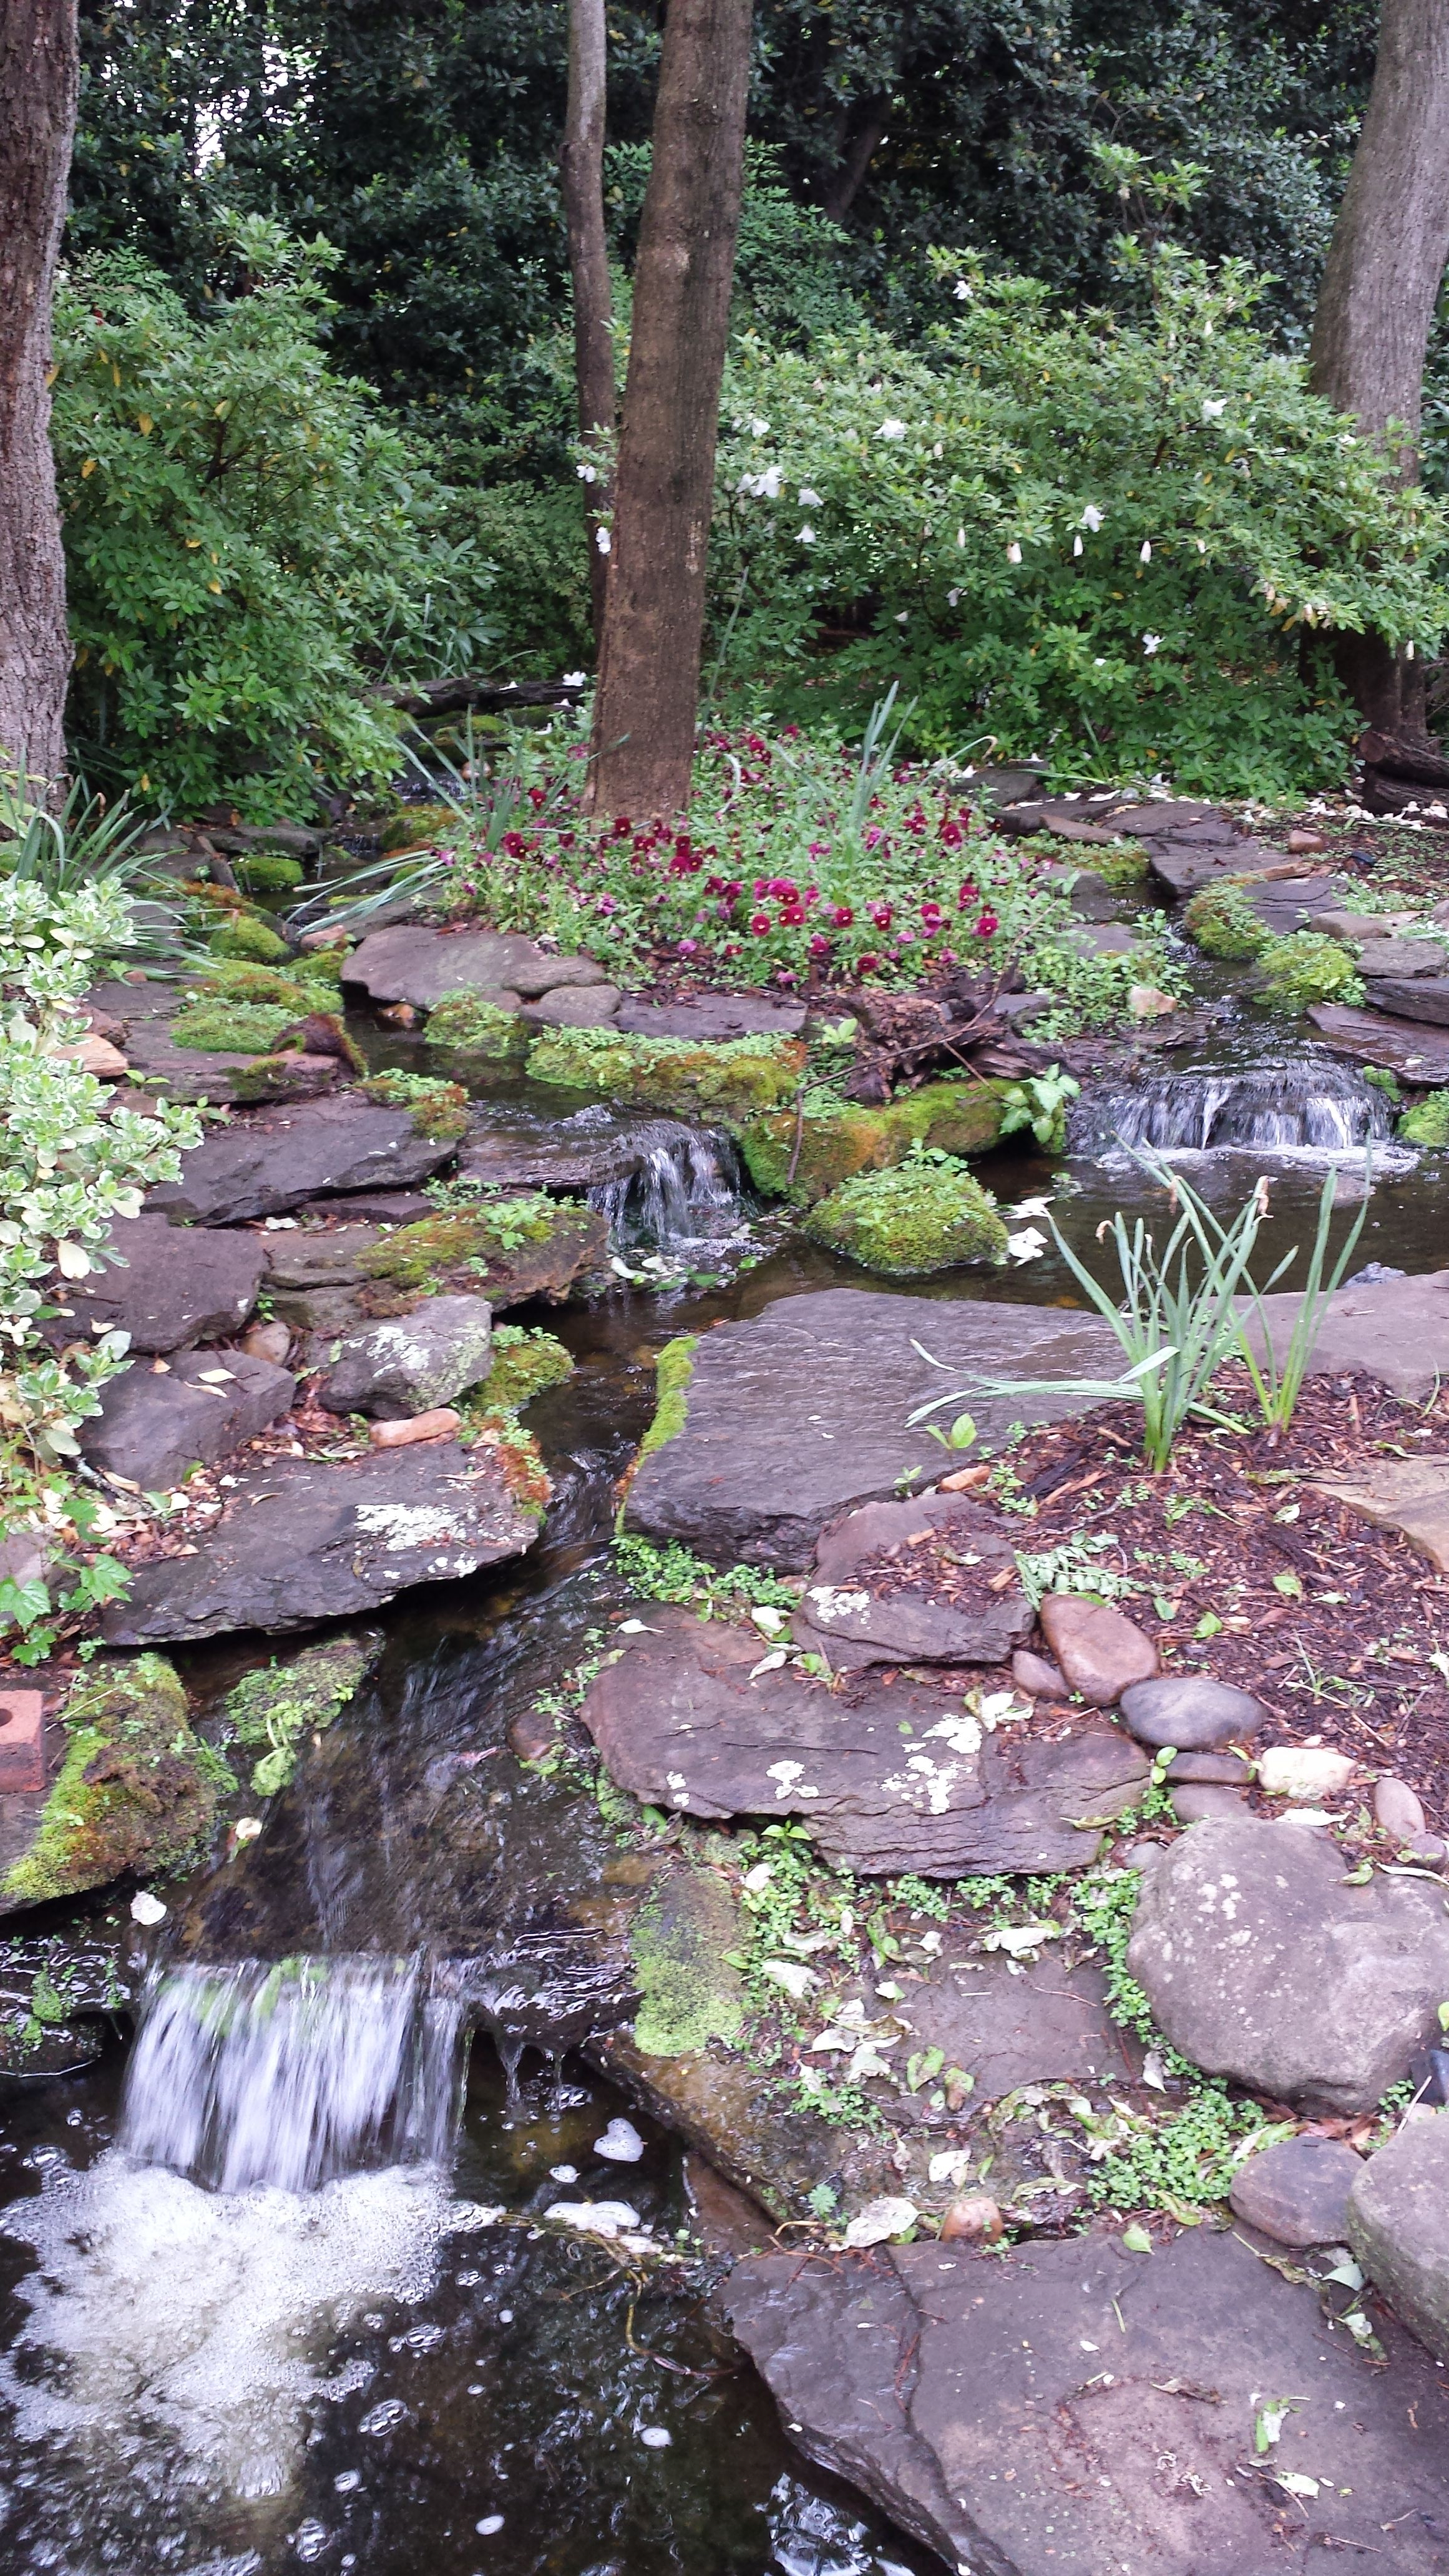 Pin On Water Features Water Falls Streams Ponds